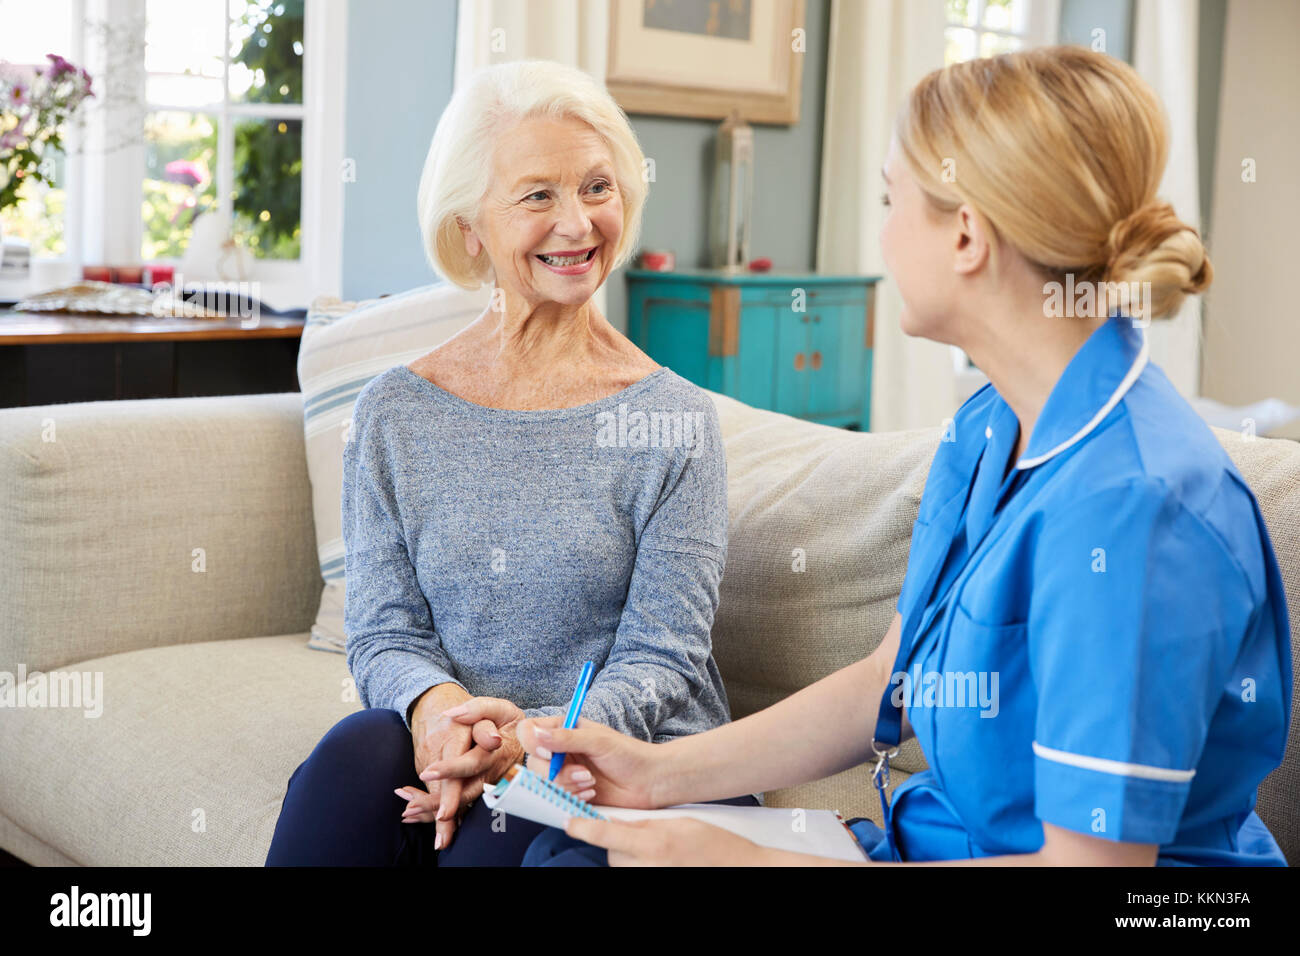 Female Community Nurse Visits Senior Woman At Home - Stock Image